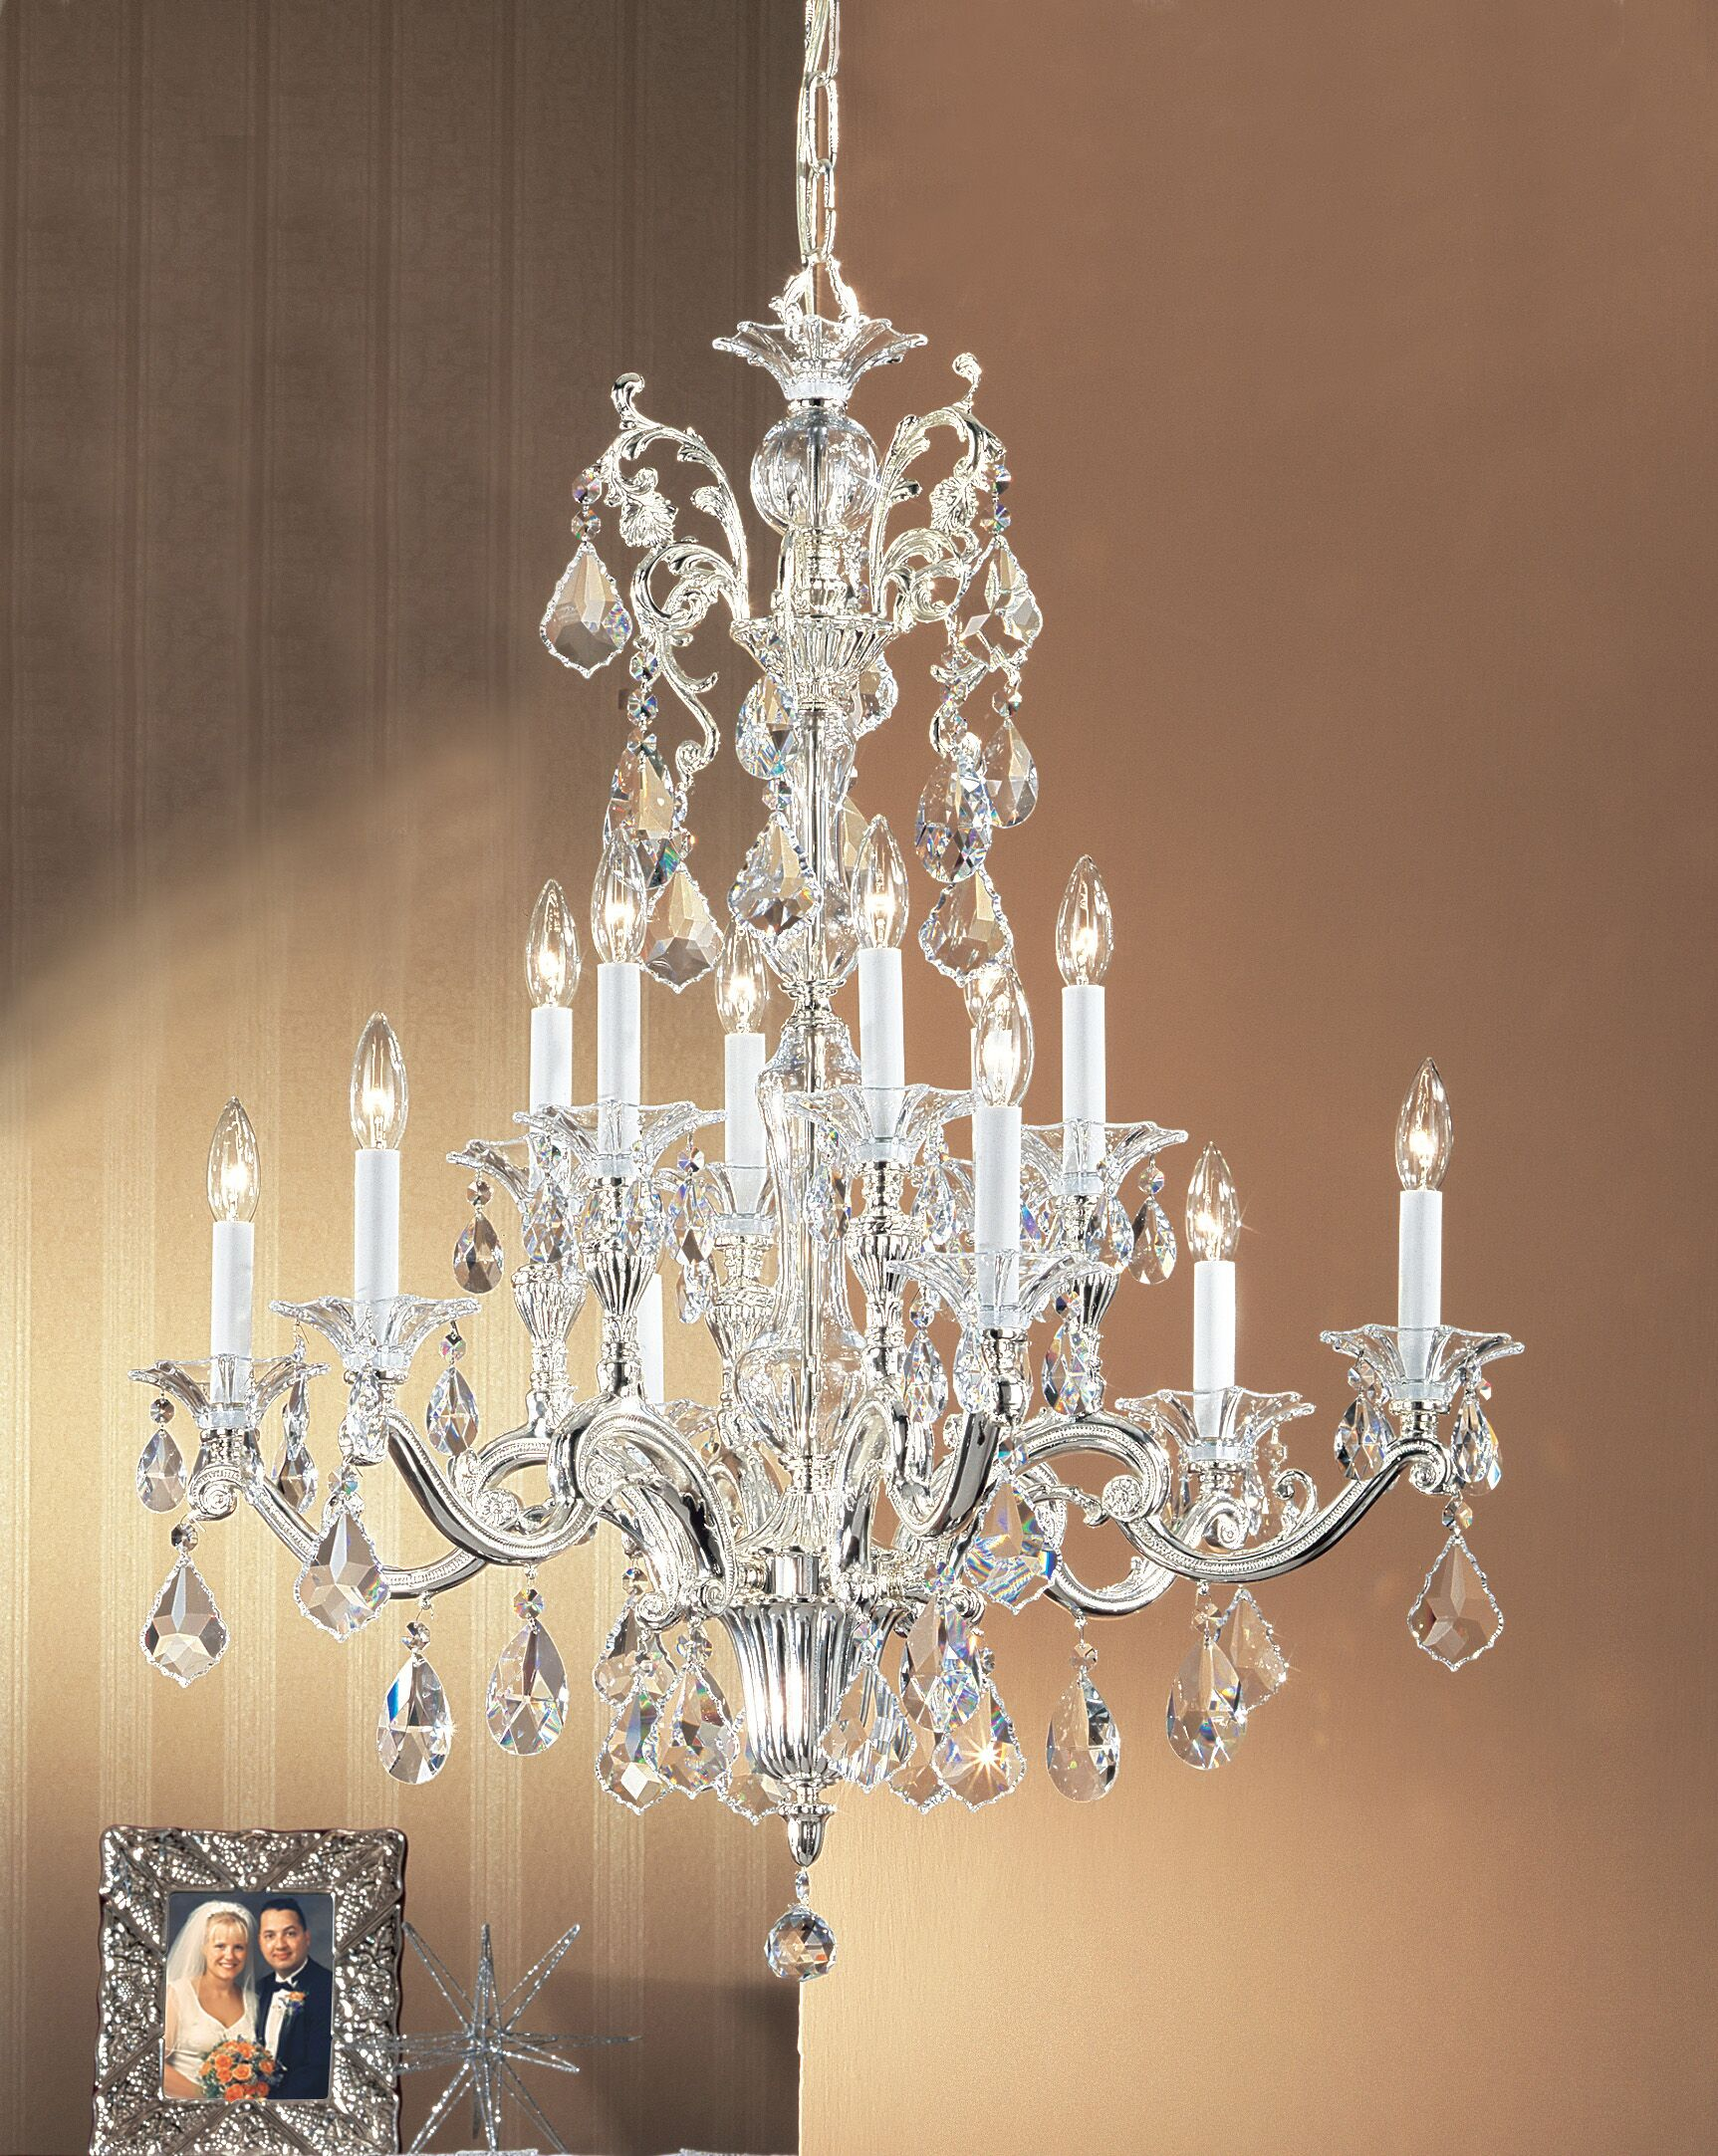 Via Firenze 12-Light Candle Style Chandelier Finish: Bronze with Black Patina, Crystal Type: Swarovski Elements